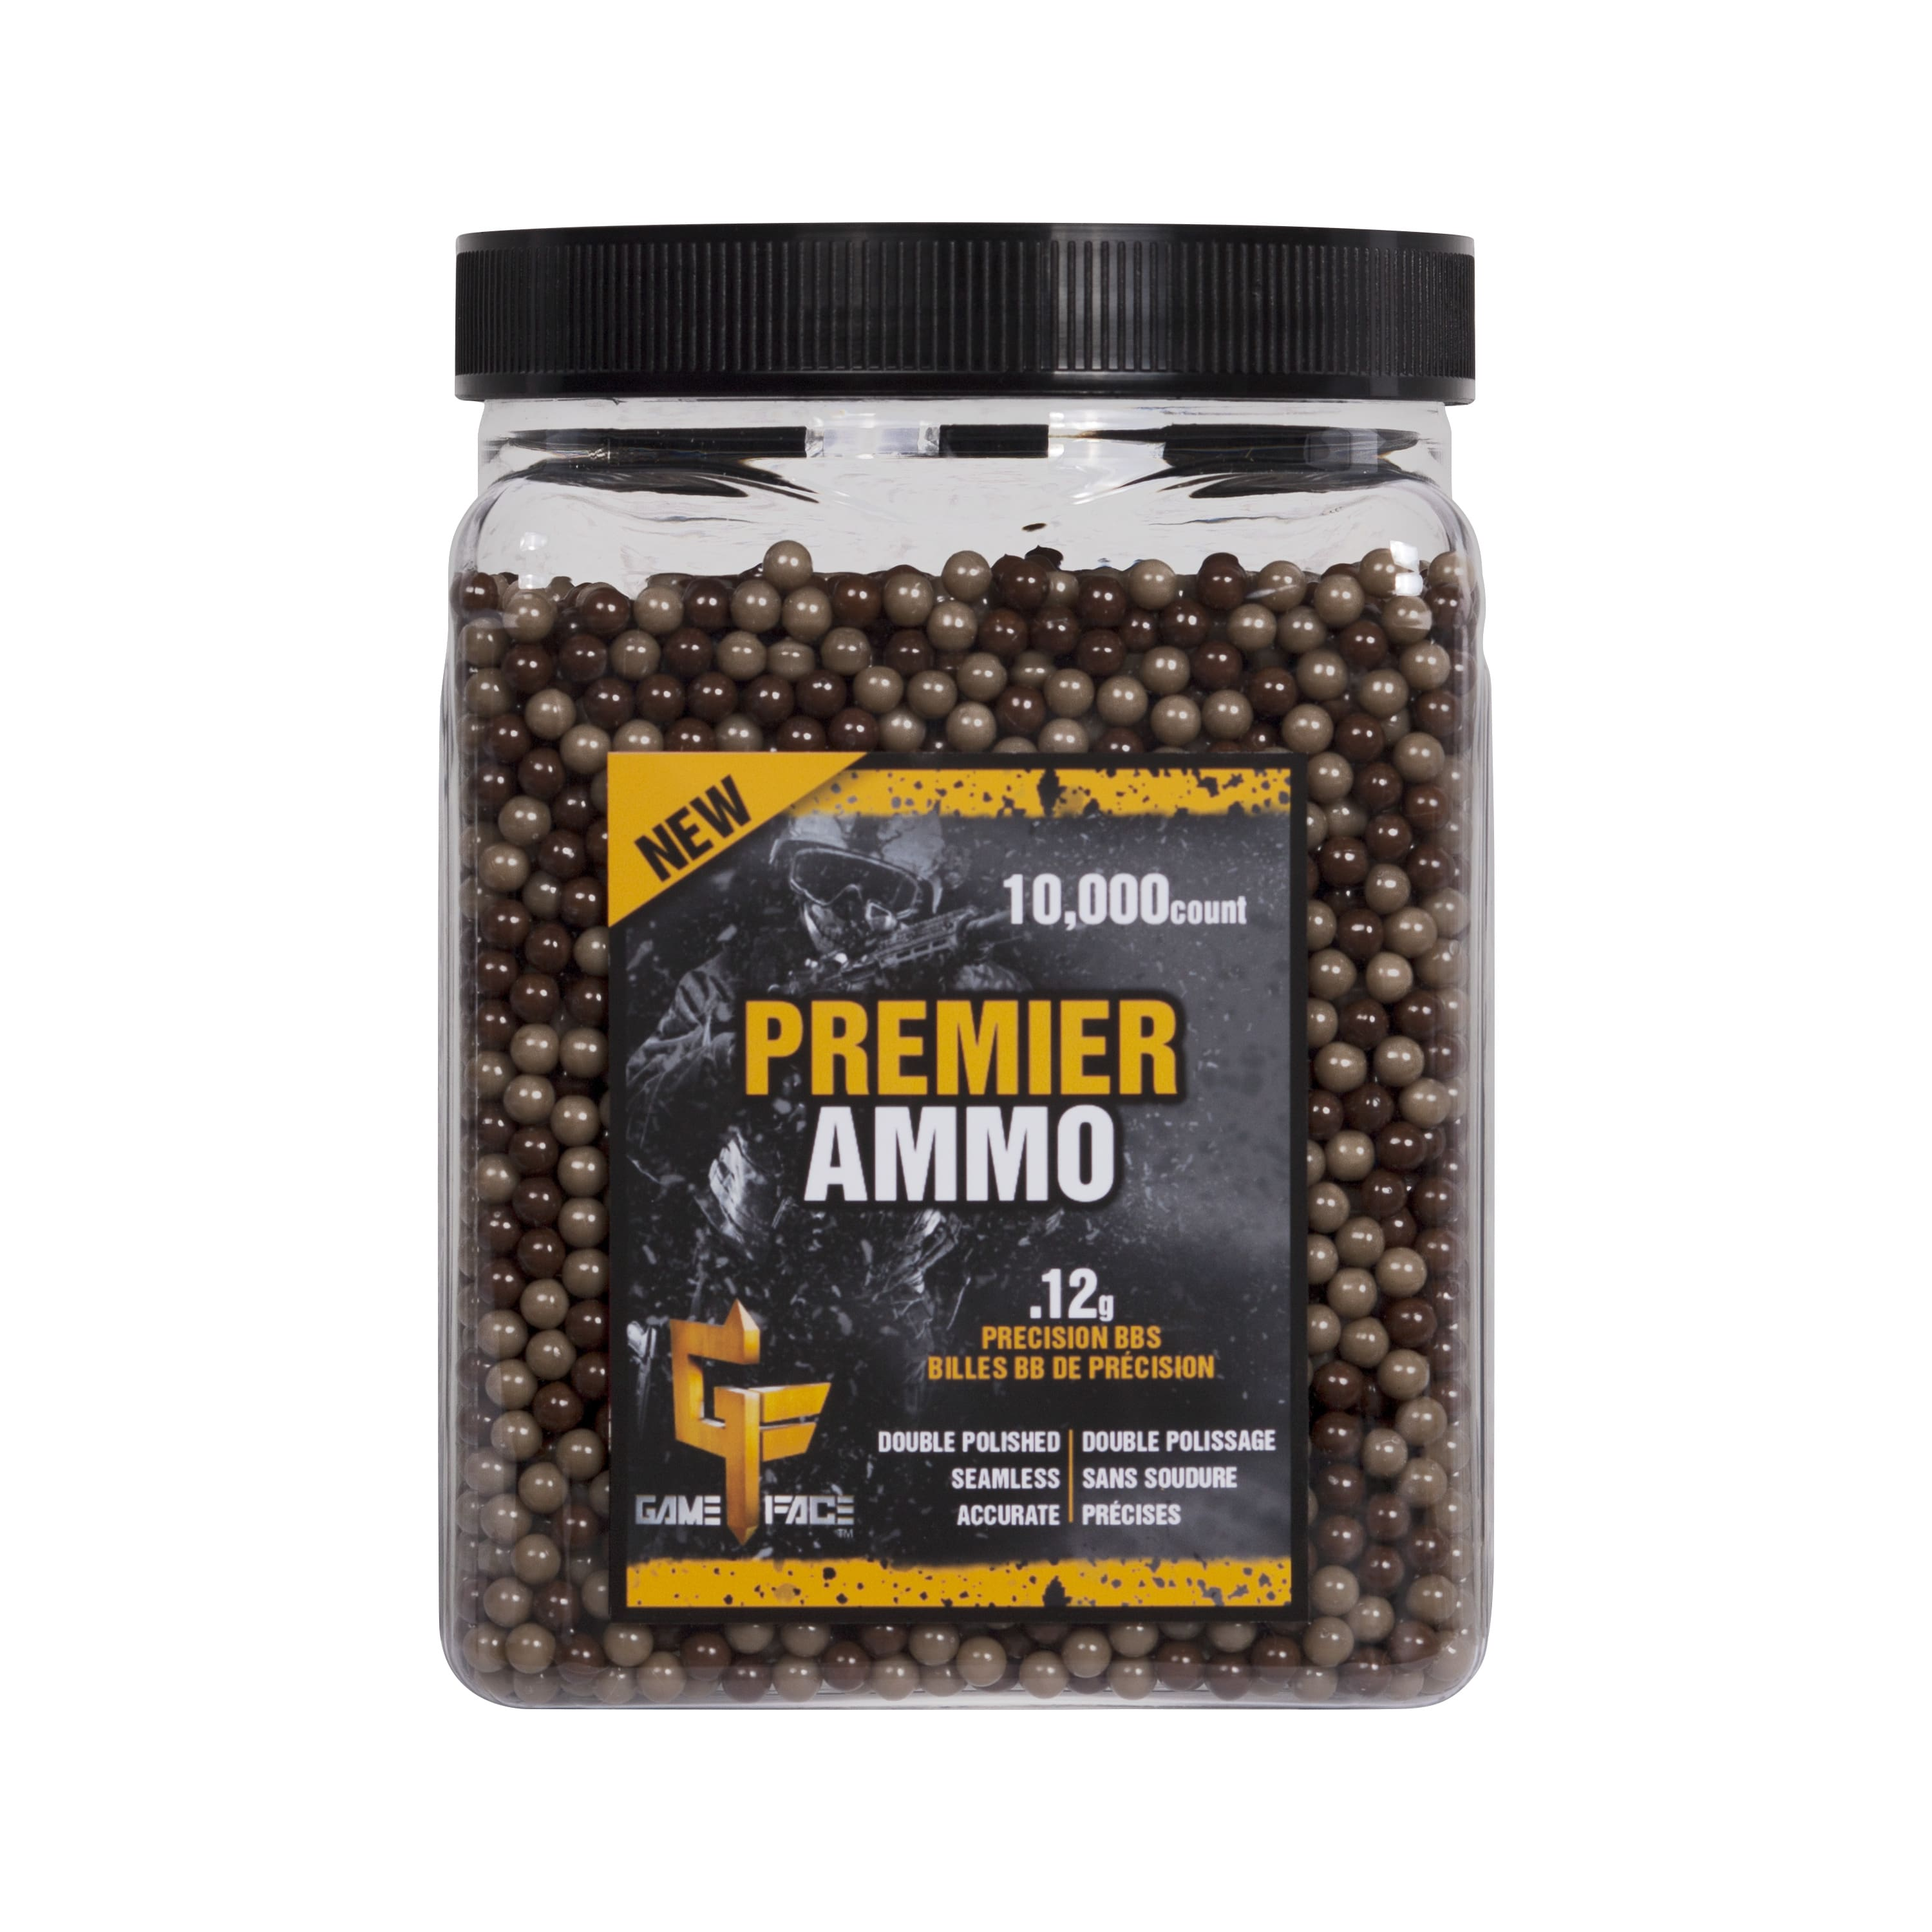 Gameface Camo Airsoft BBs by Crosman 12gr ammo (10,000 count) $2.08 at Walmart (Reg.$20)